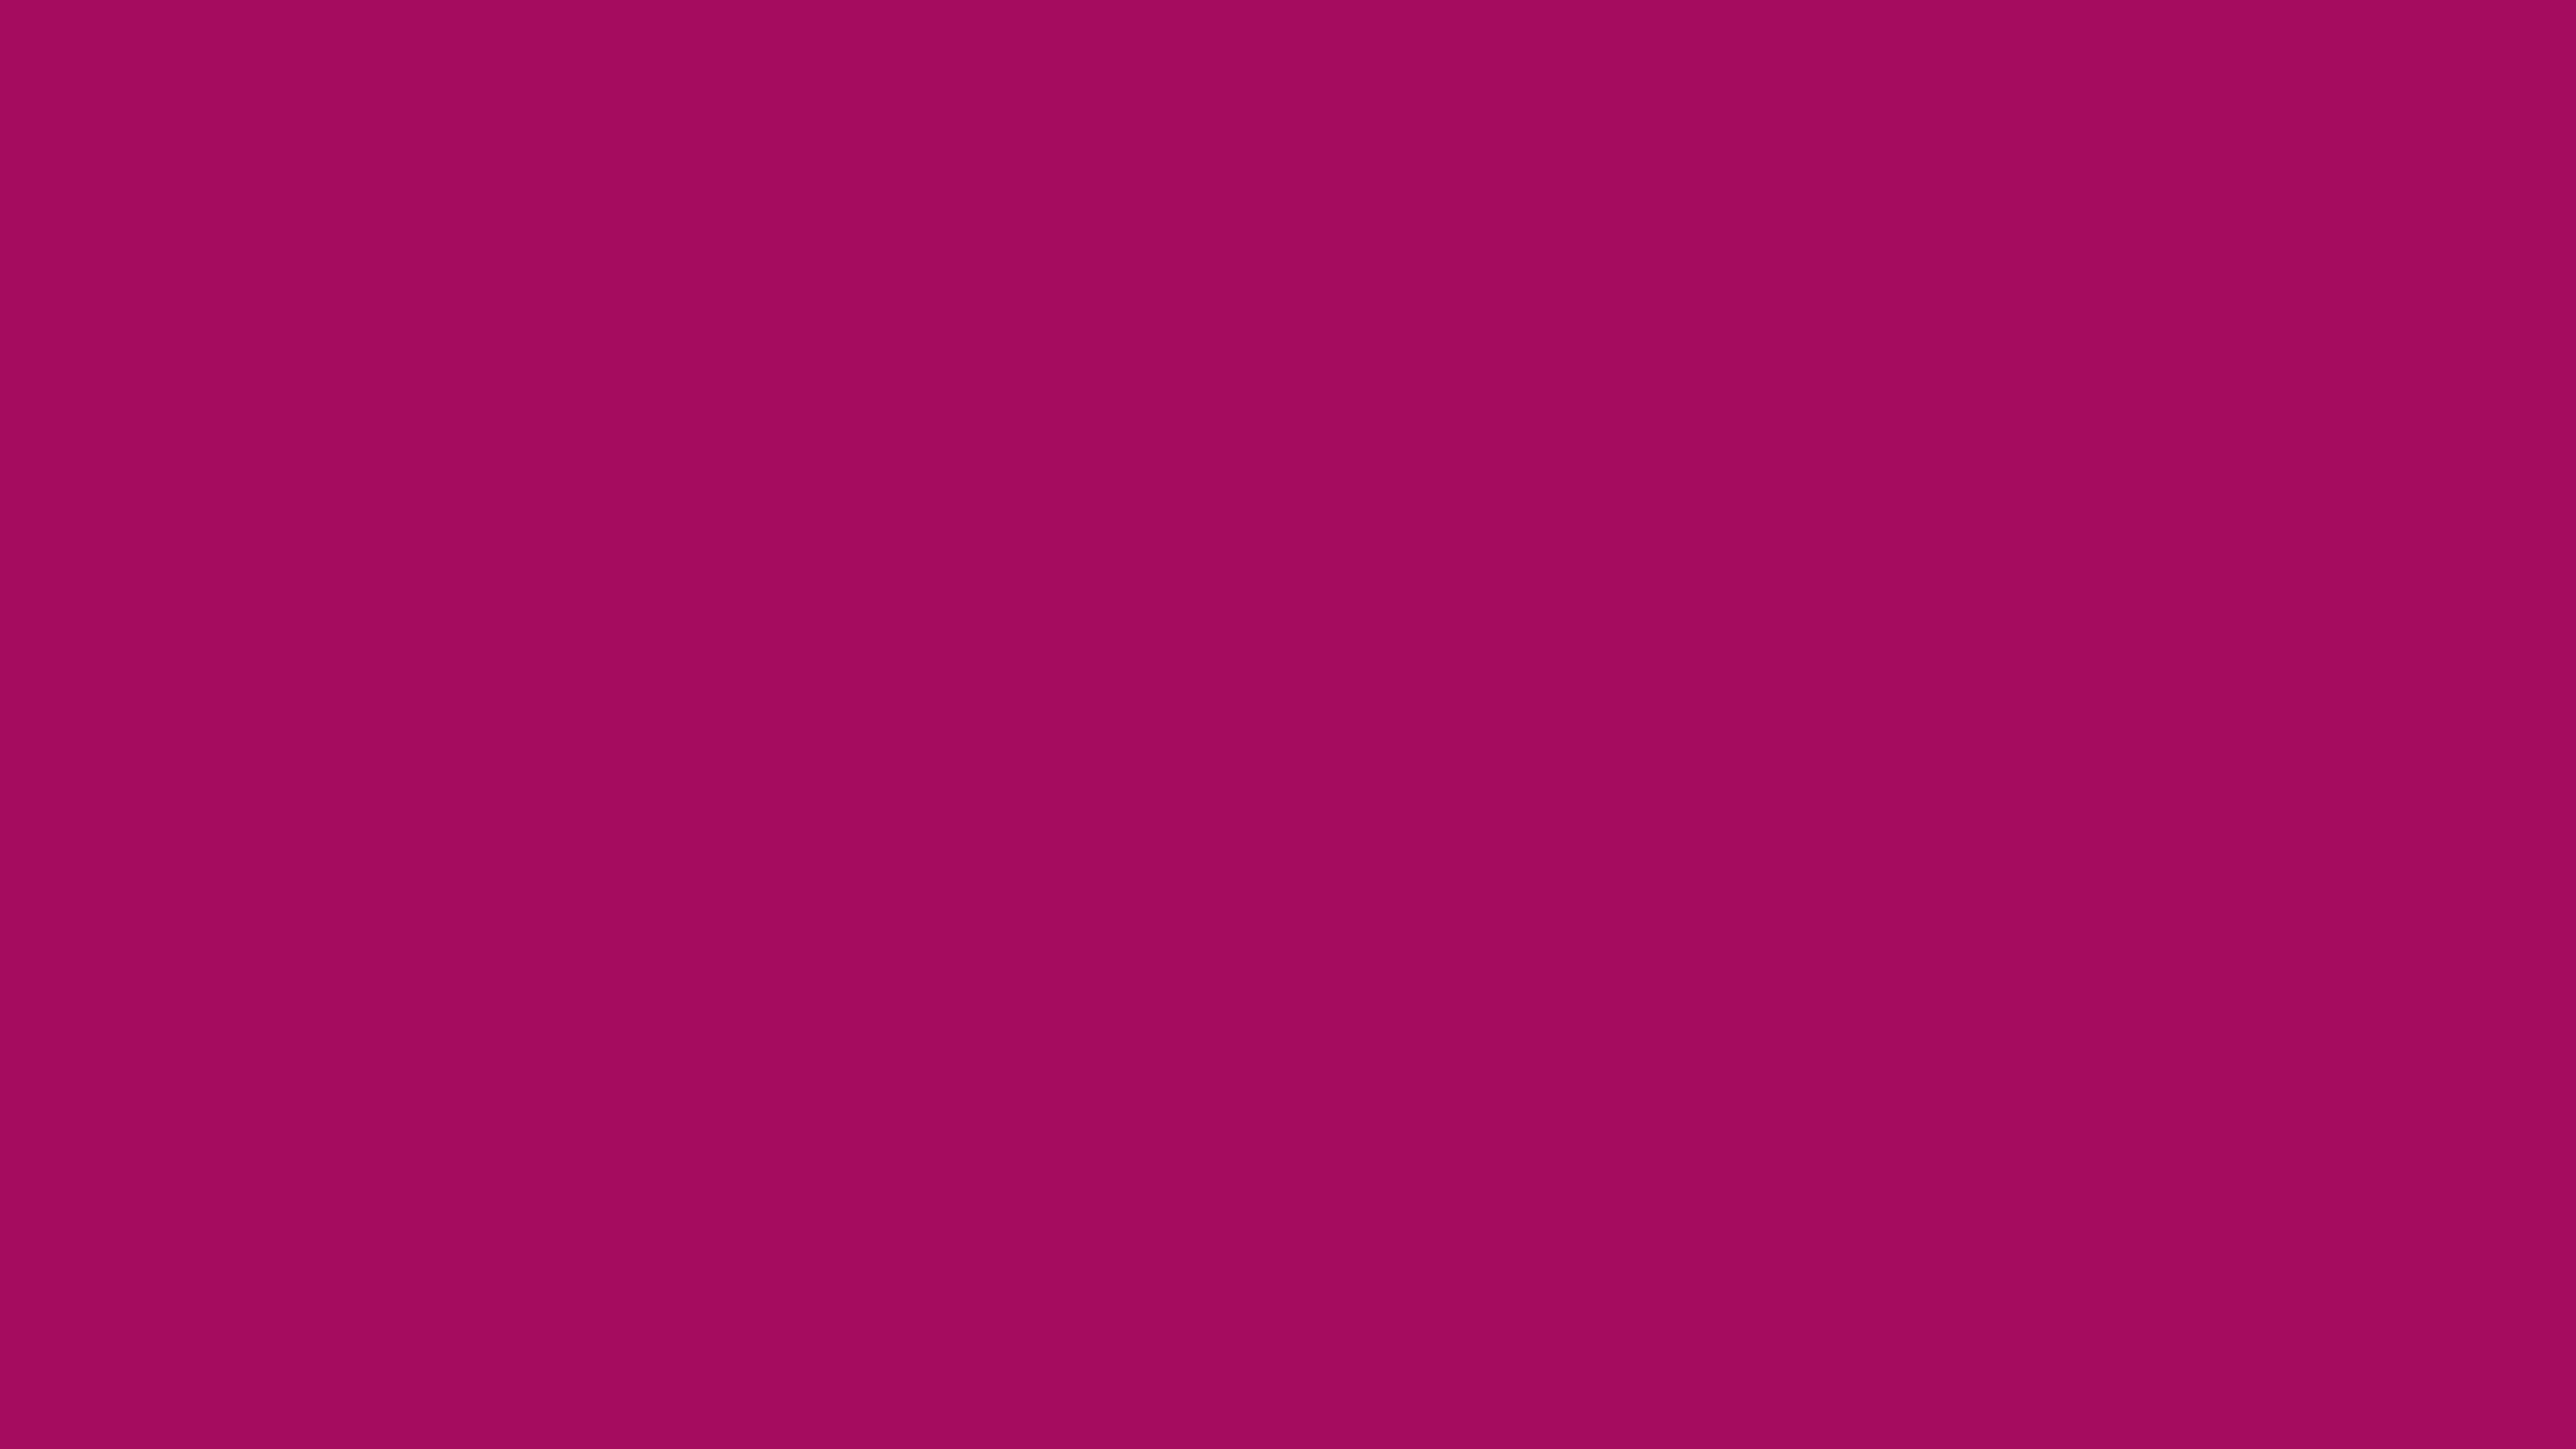 7680x4320 Jazzberry Jam Solid Color Background